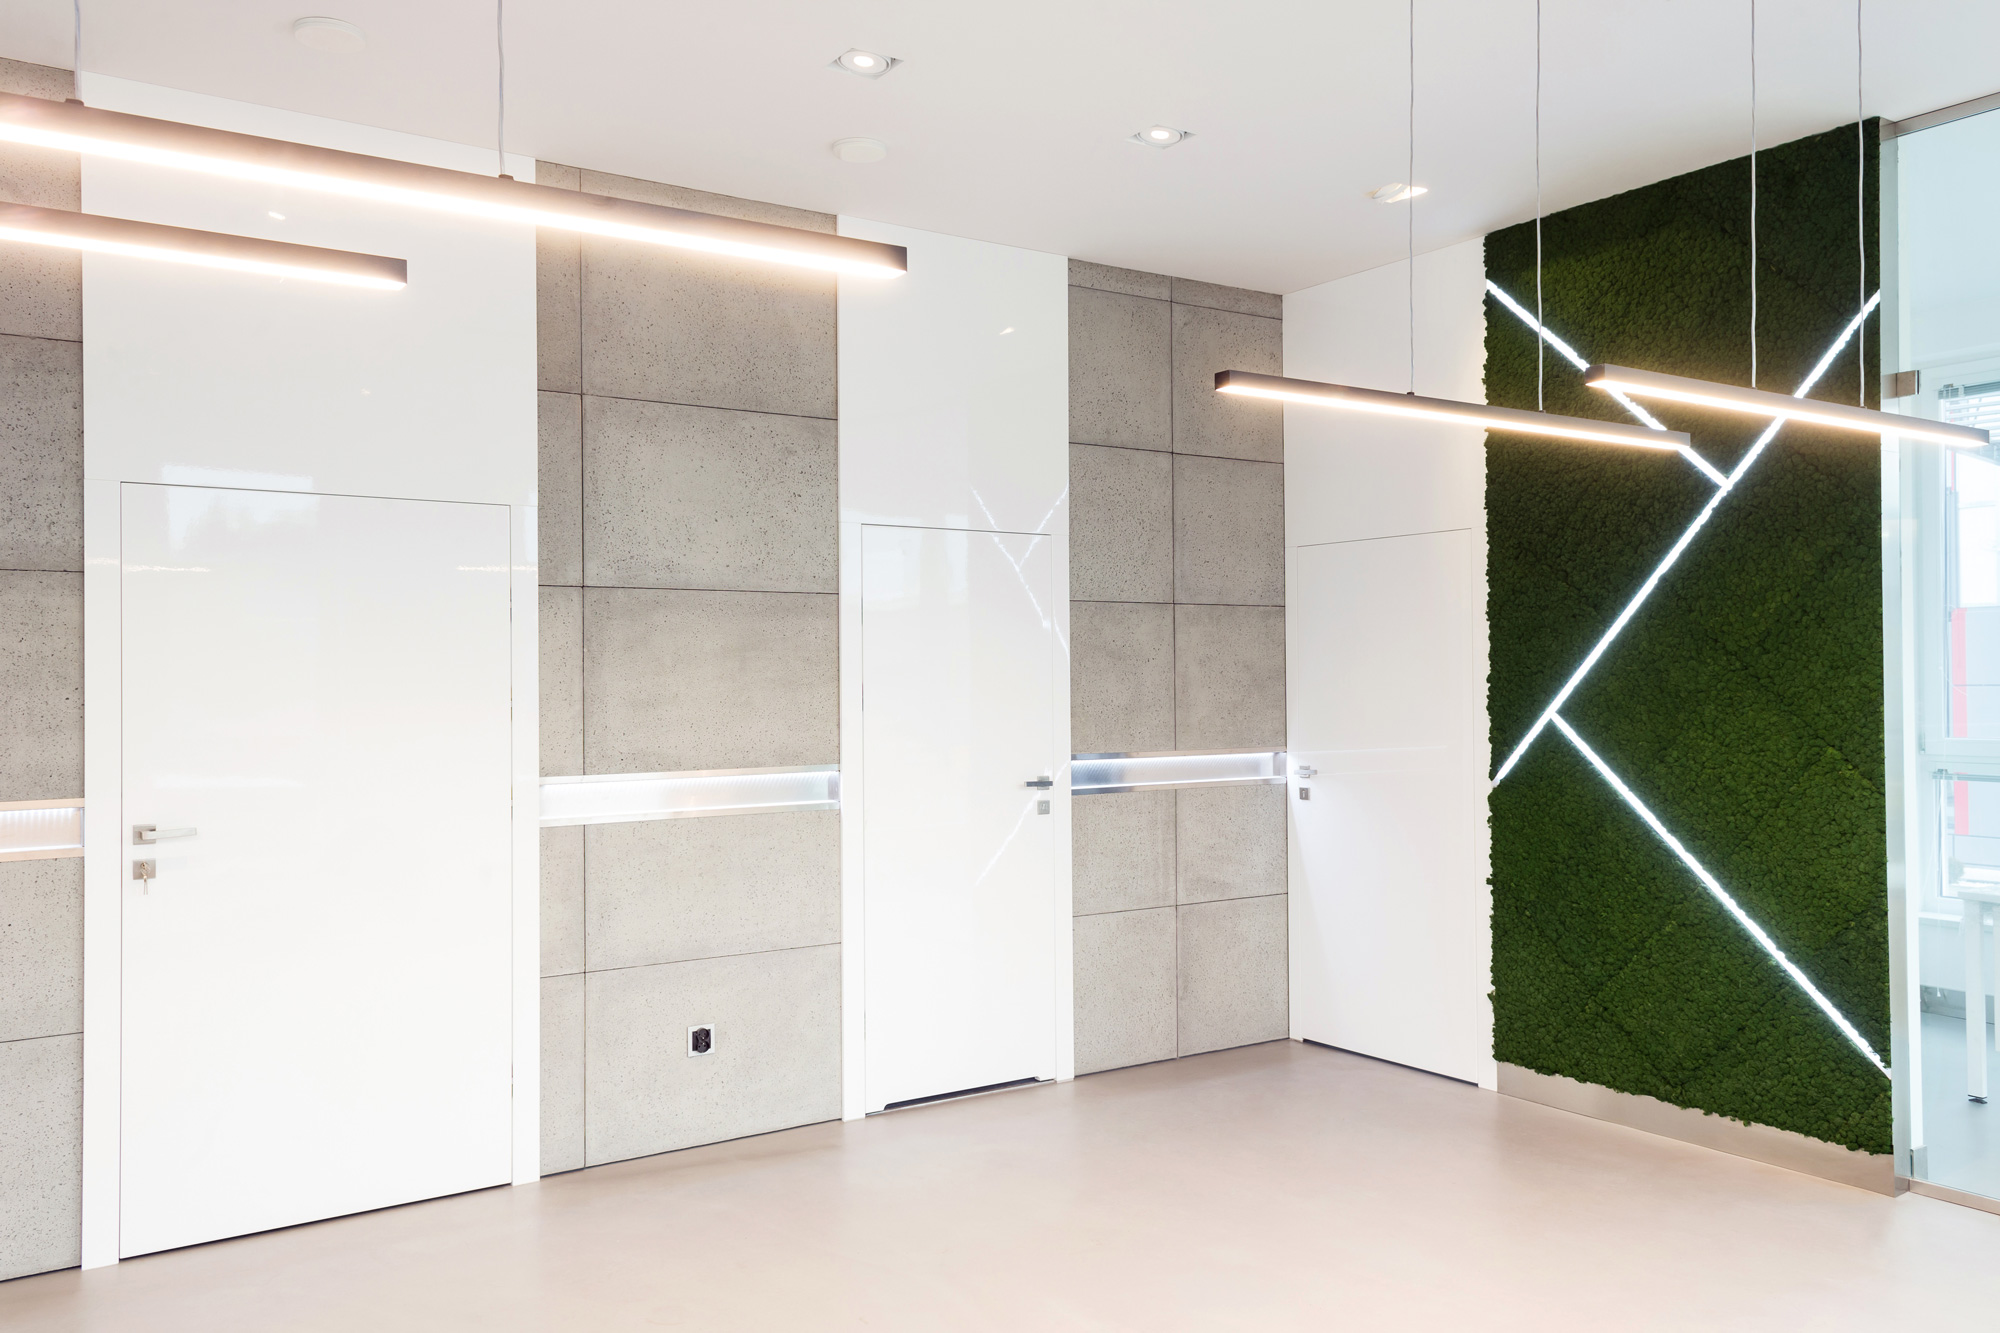 LASERTECHNIKA office greenery, Evergreen Moss Standard in moss green and apple green